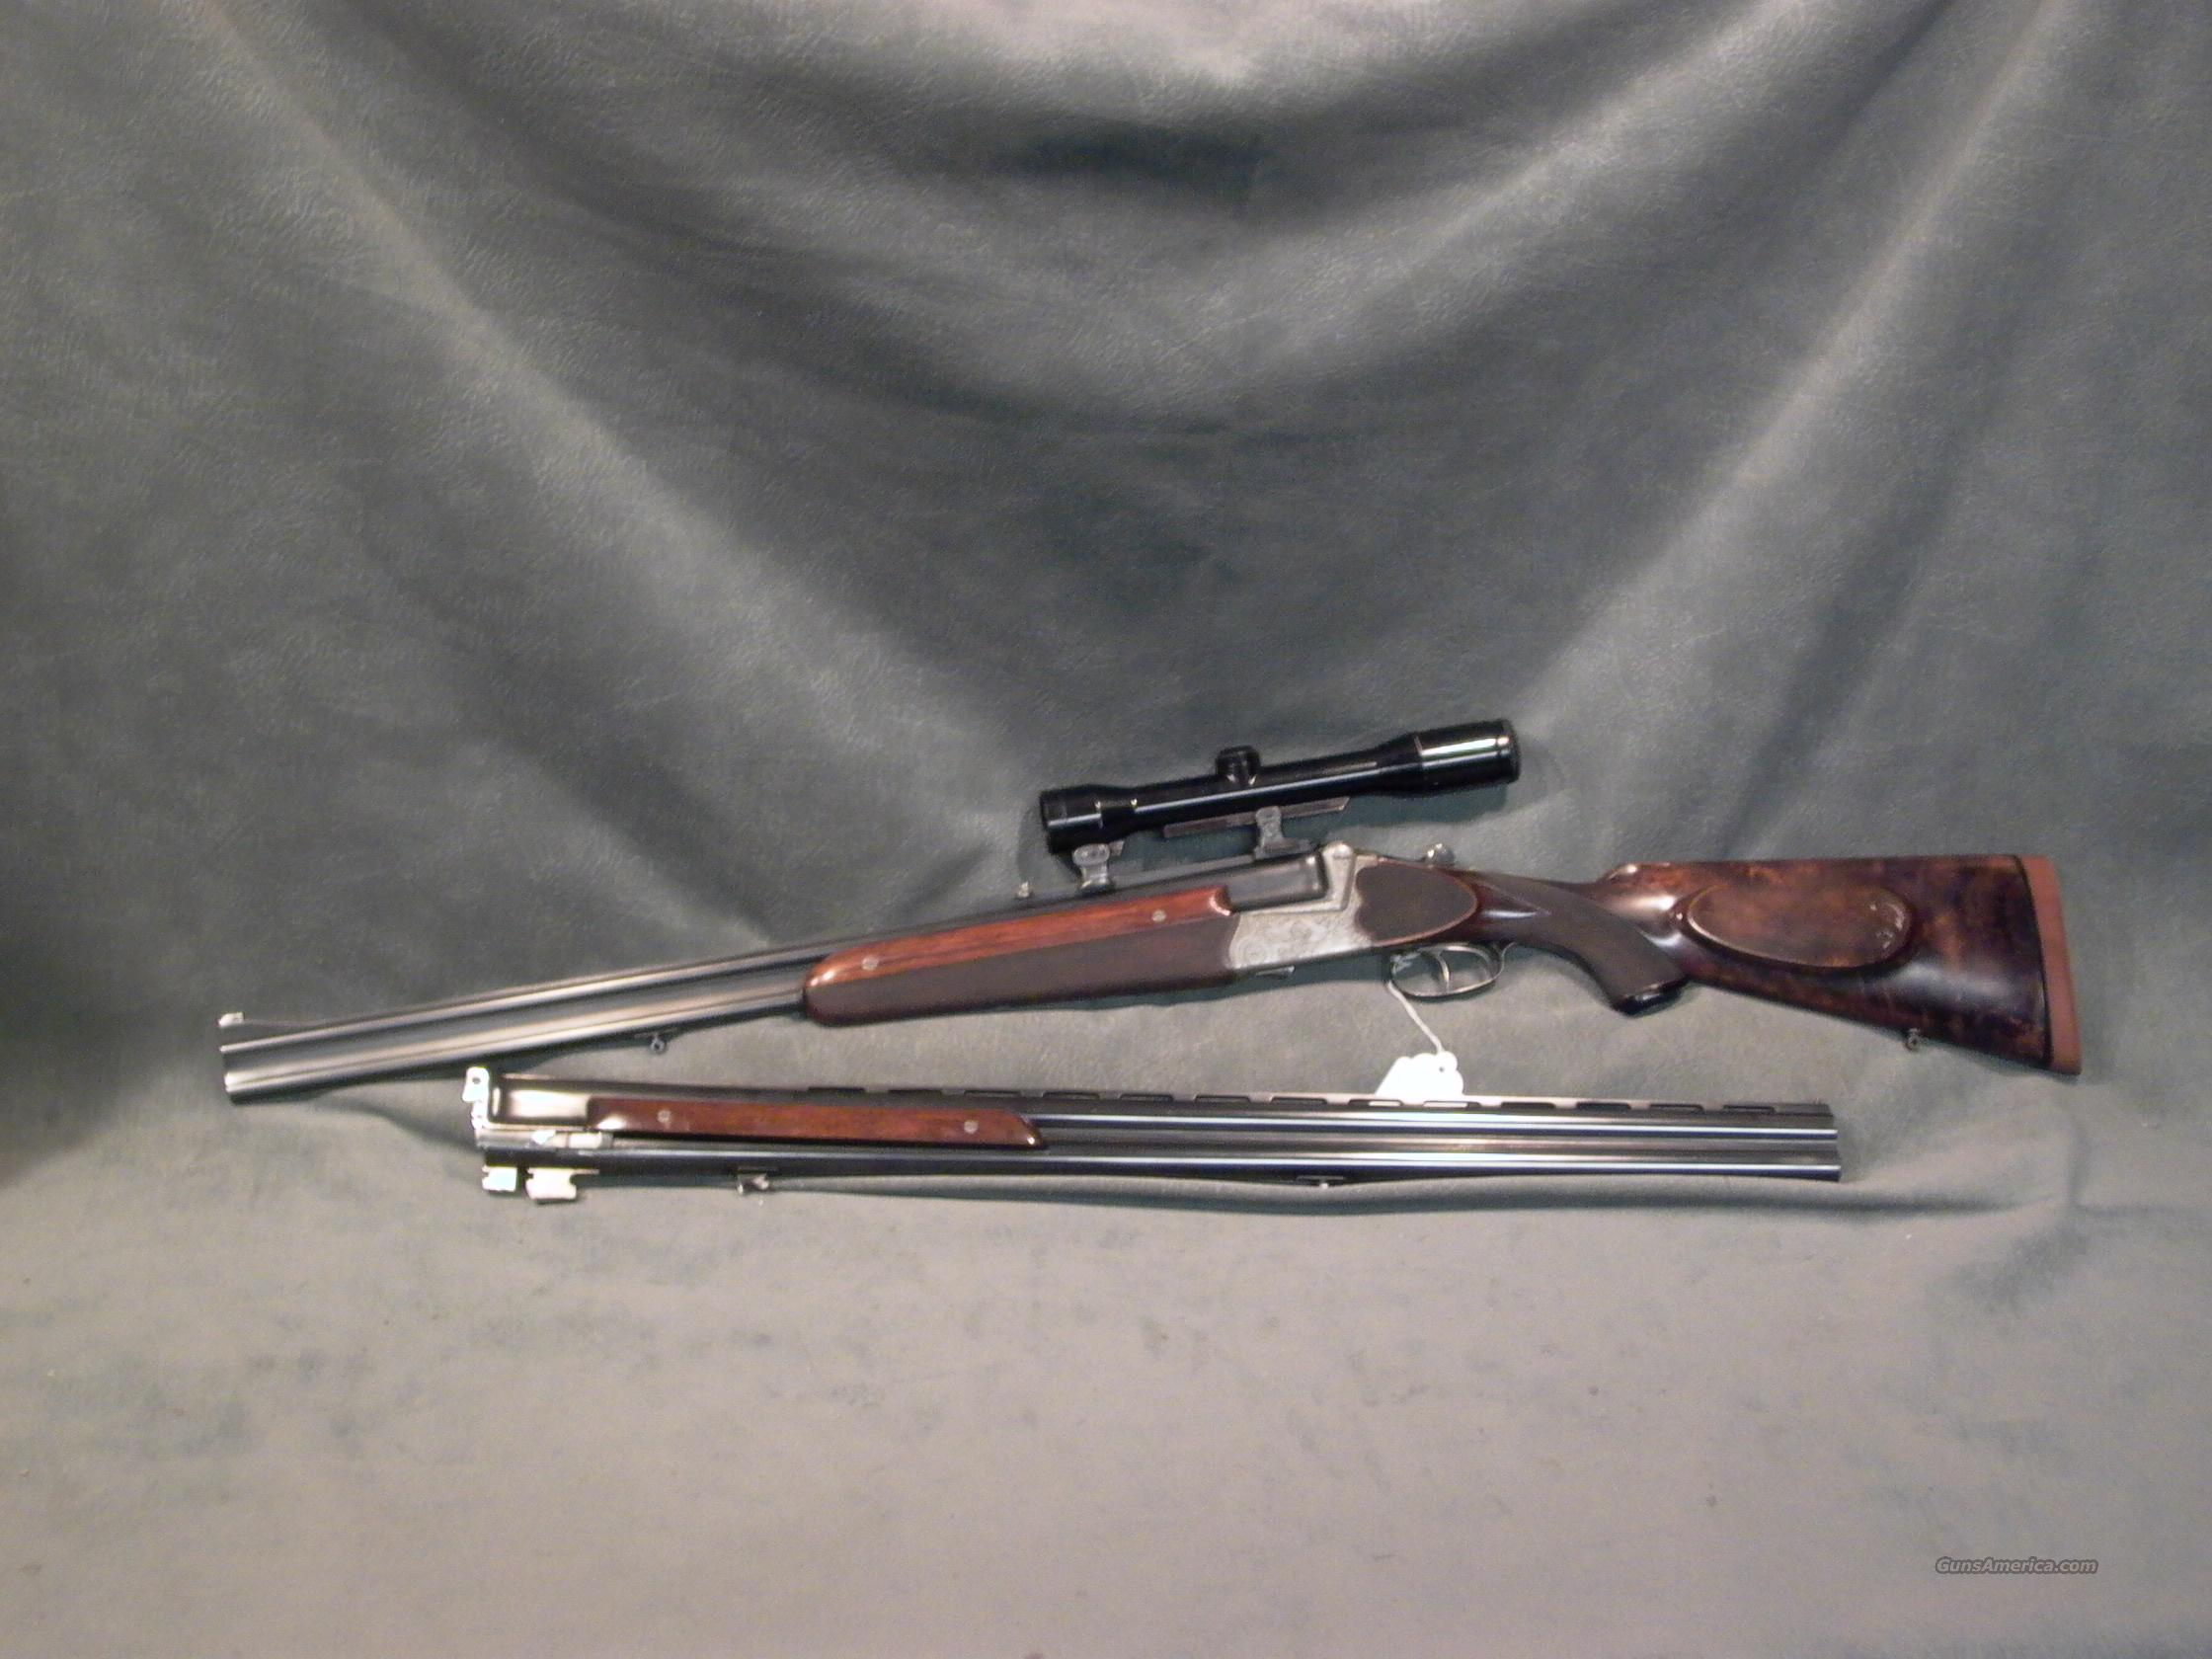 Peter Marholt over/under 2bbls rifle/shotgun  Guns > Rifles > Double Rifles (Misc.)